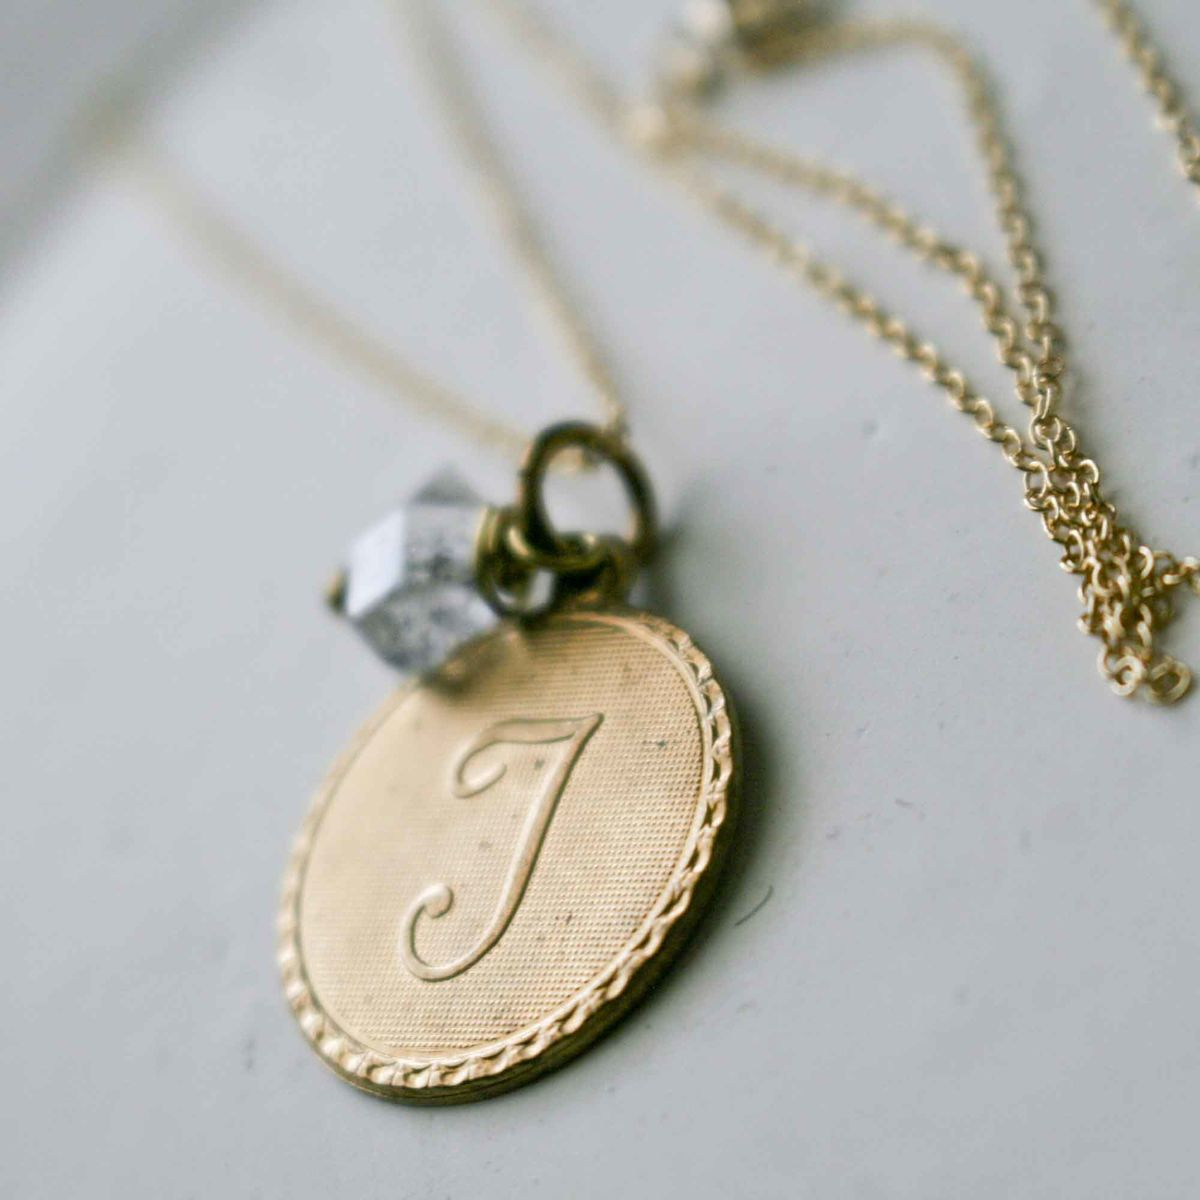 Uppercase Cursive Initial Monogram Letter Round Disc Charm Necklace Within Newest Letter G Alphabet Locket Element Necklaces (View 6 of 25)